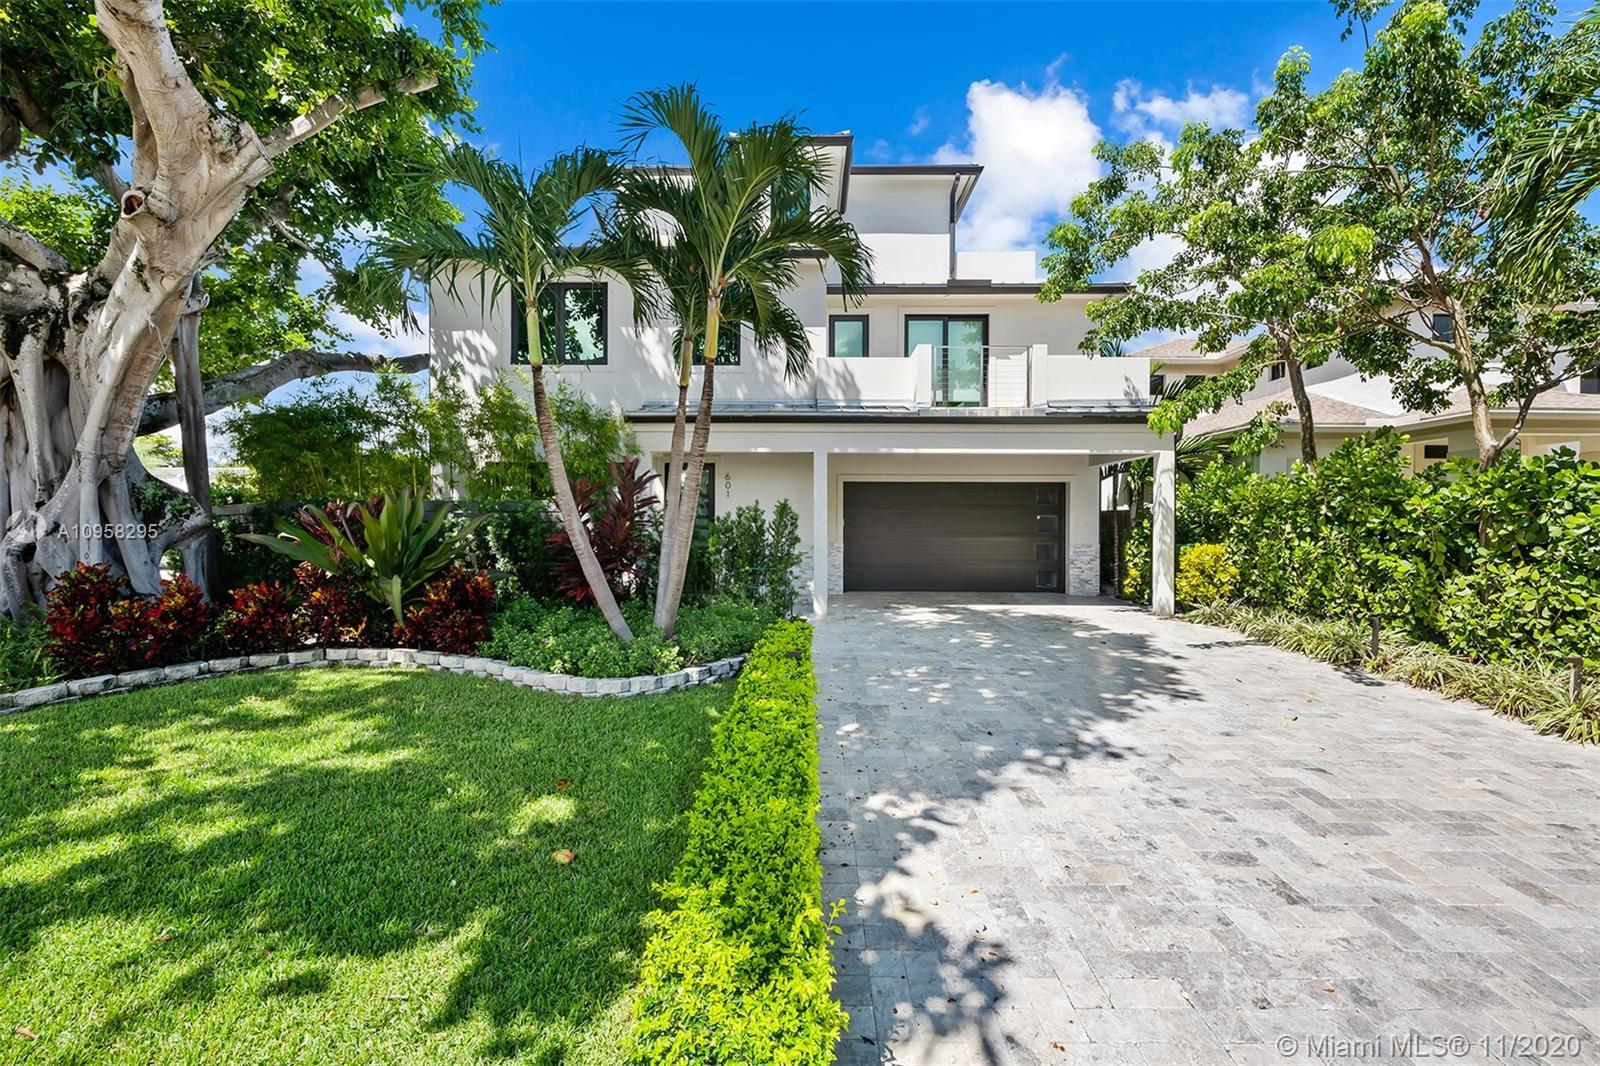 Modern signature home in the heart of Victoria Park! This meticulous 4 bed/3.5 bath oasis is a welco